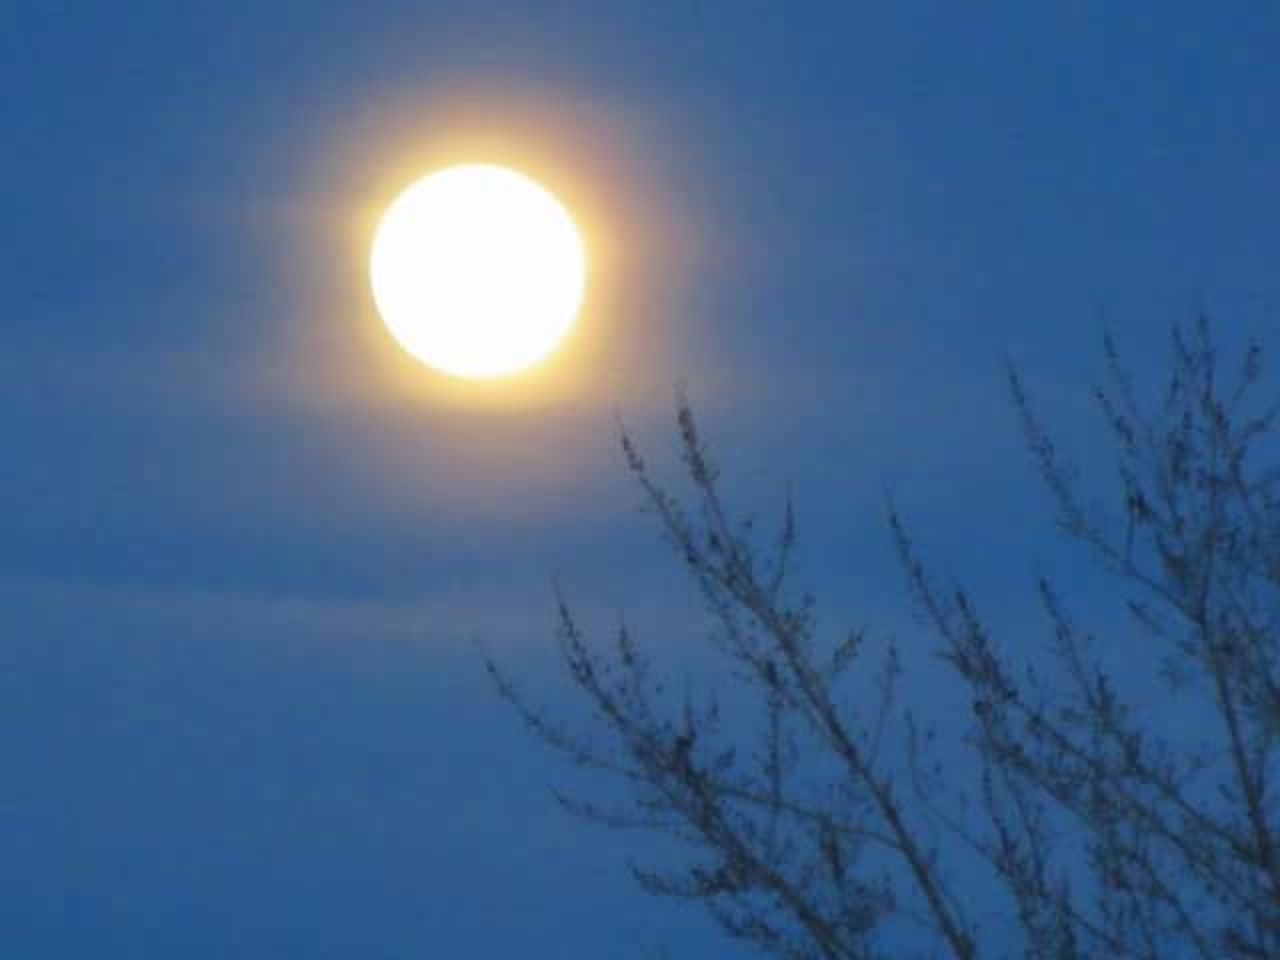 Moon Moonlight Moon Rising Moonporn Moon Shots TreePorn Night Sky Outdoors Bare Tree Beauty In Nature Full Moon No Filter, No Edit, Just Photography Wolf Moon Full Moon Moon Moonrise Full Moon 🌕 Full Moon Risen'... Full Moon Collection MoonScape Moon Porn Winter Snow Cold Temperature